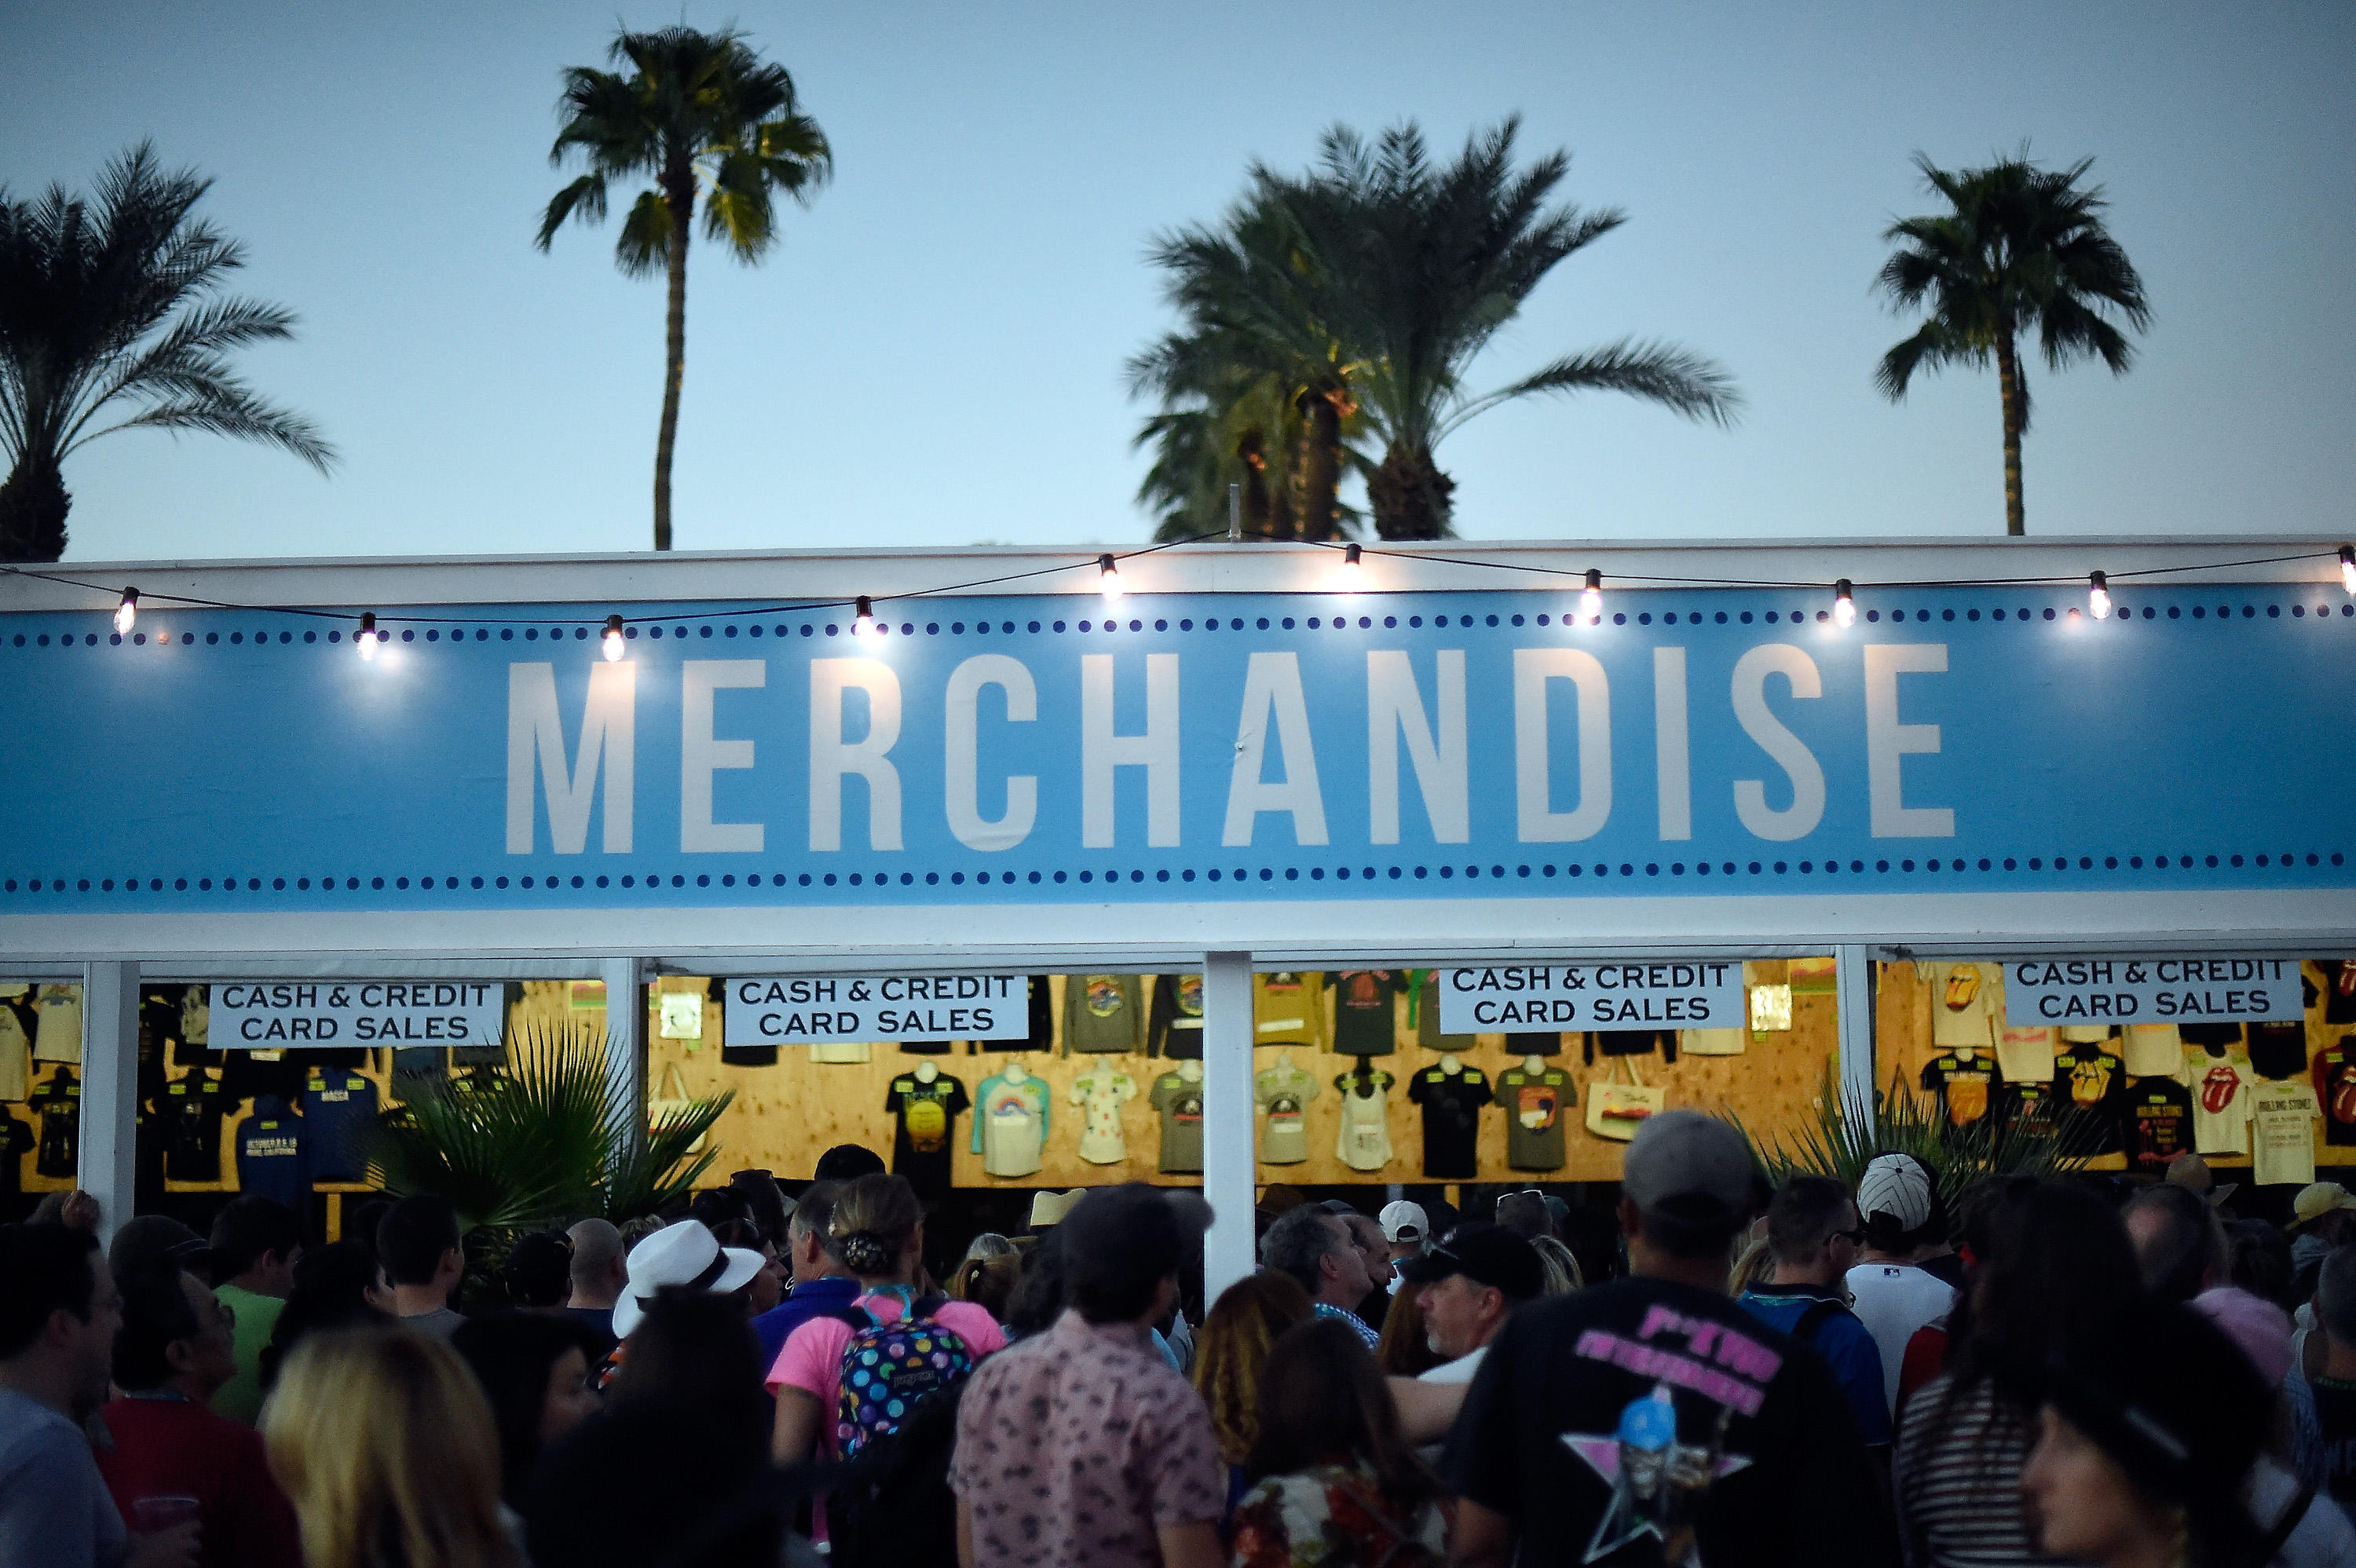 A merchandise stand in front of palm trees